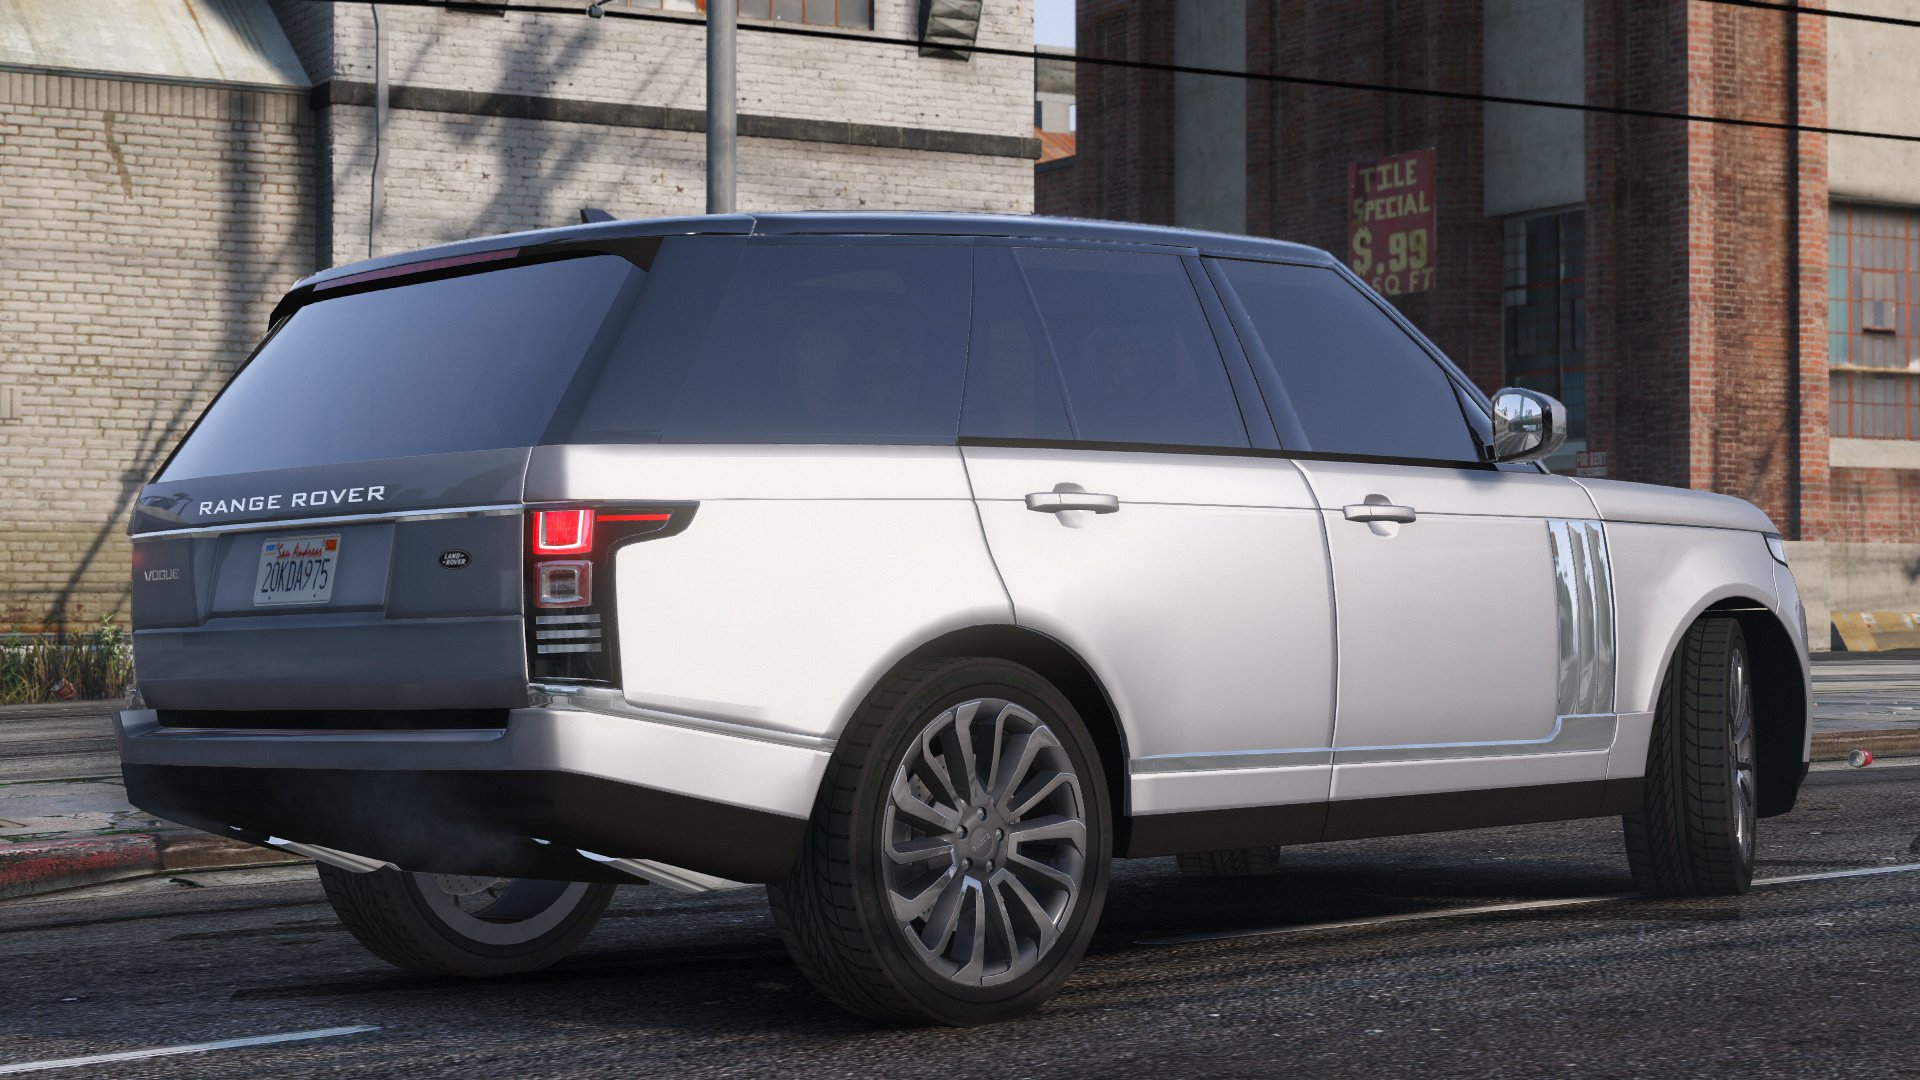 2013 range rover vogue gta5. Black Bedroom Furniture Sets. Home Design Ideas